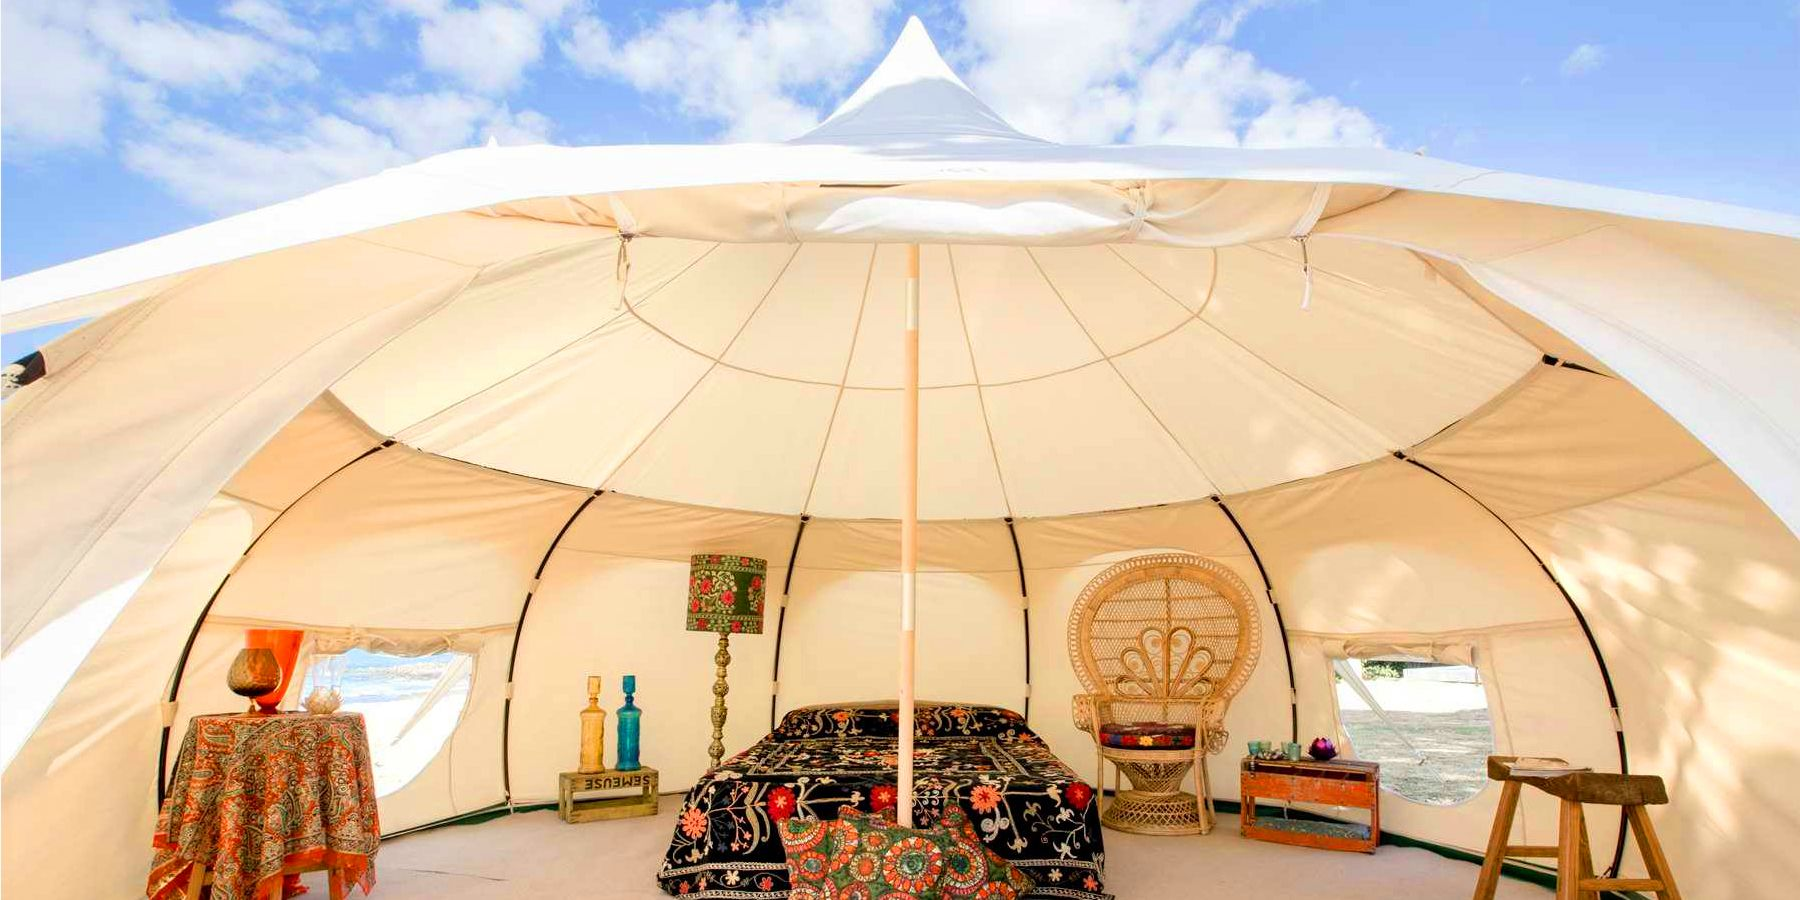 These 7 Glamping Tents Make Luxurious Camping Easy